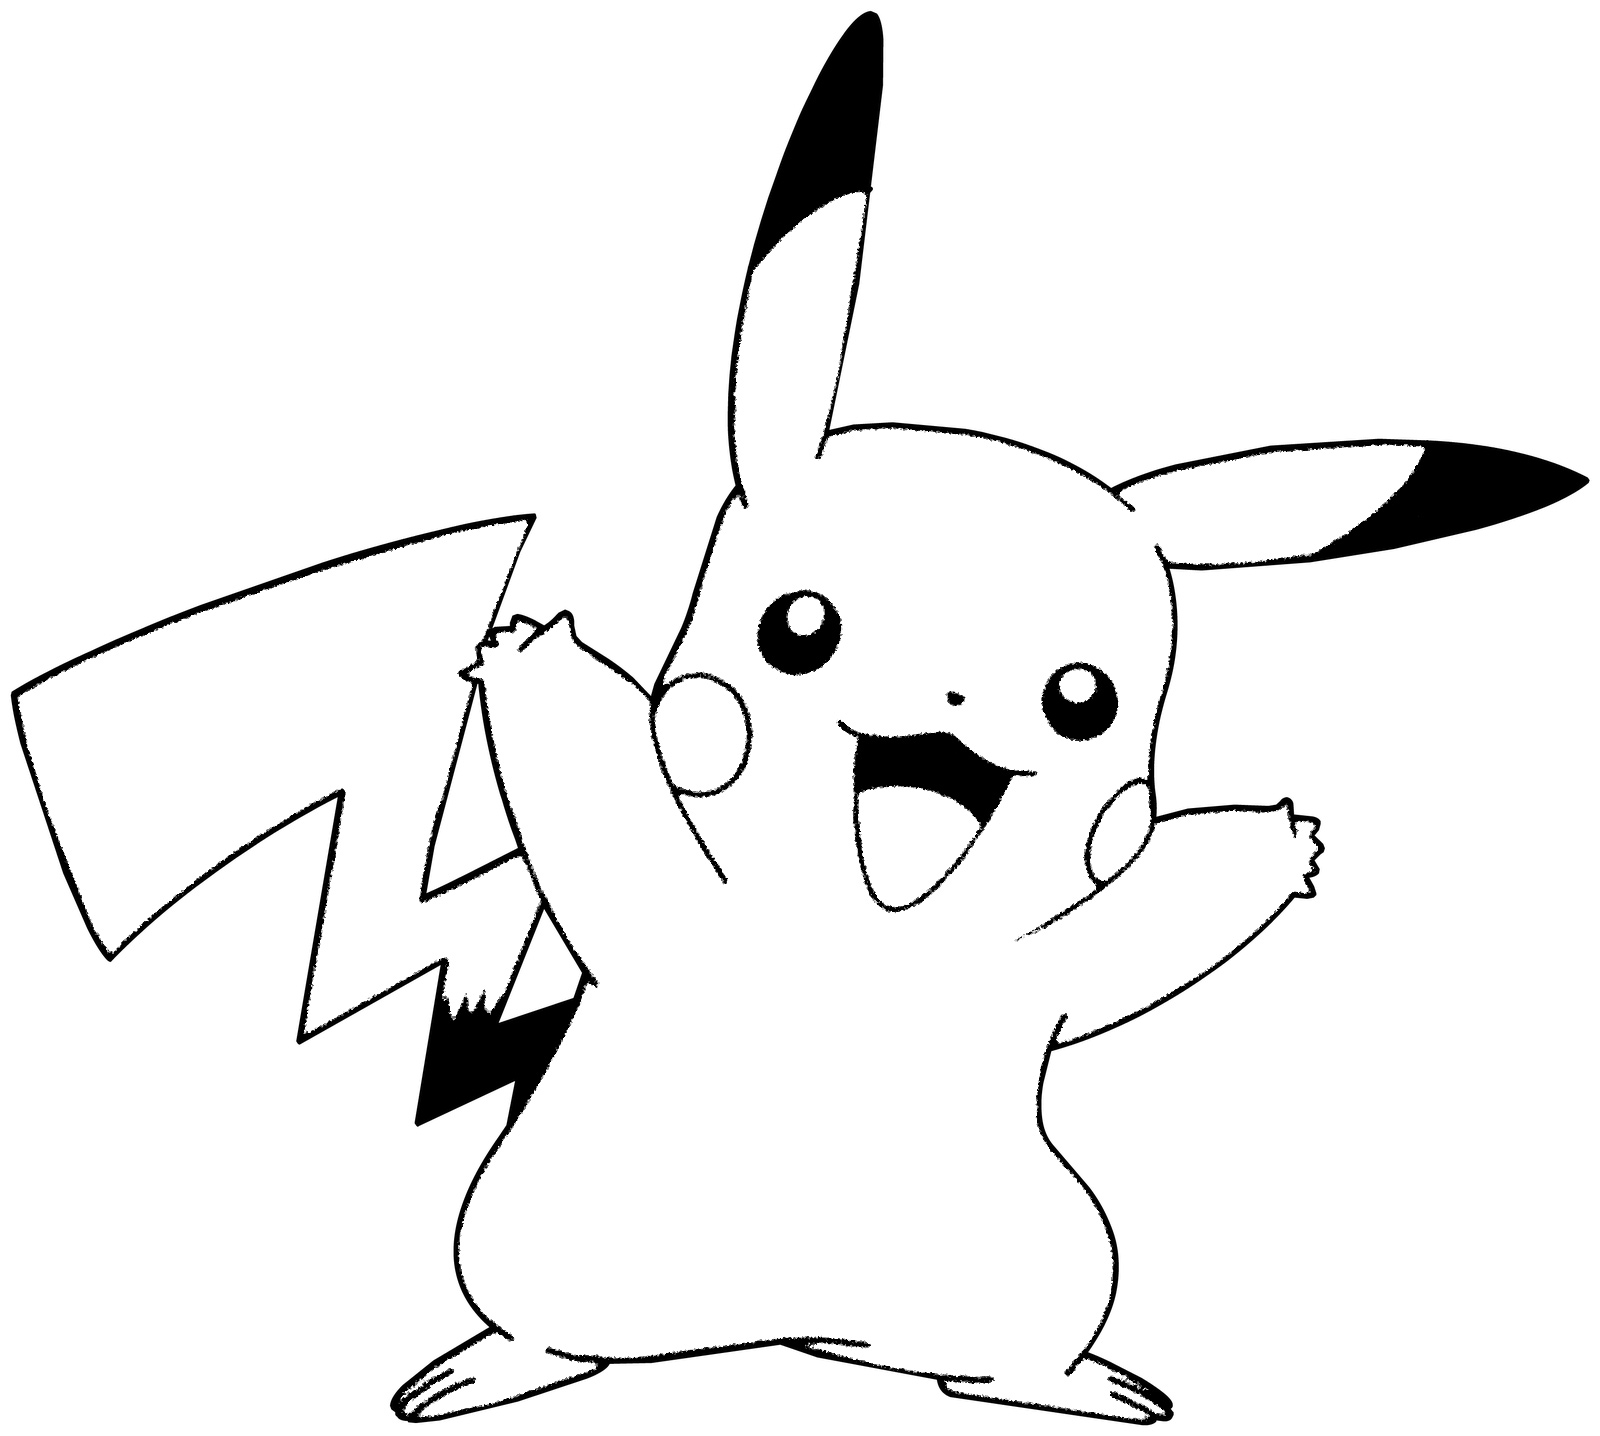 pikachu coloring pages pikachu with a hat coloring page bubakidscom pikachu coloring pages